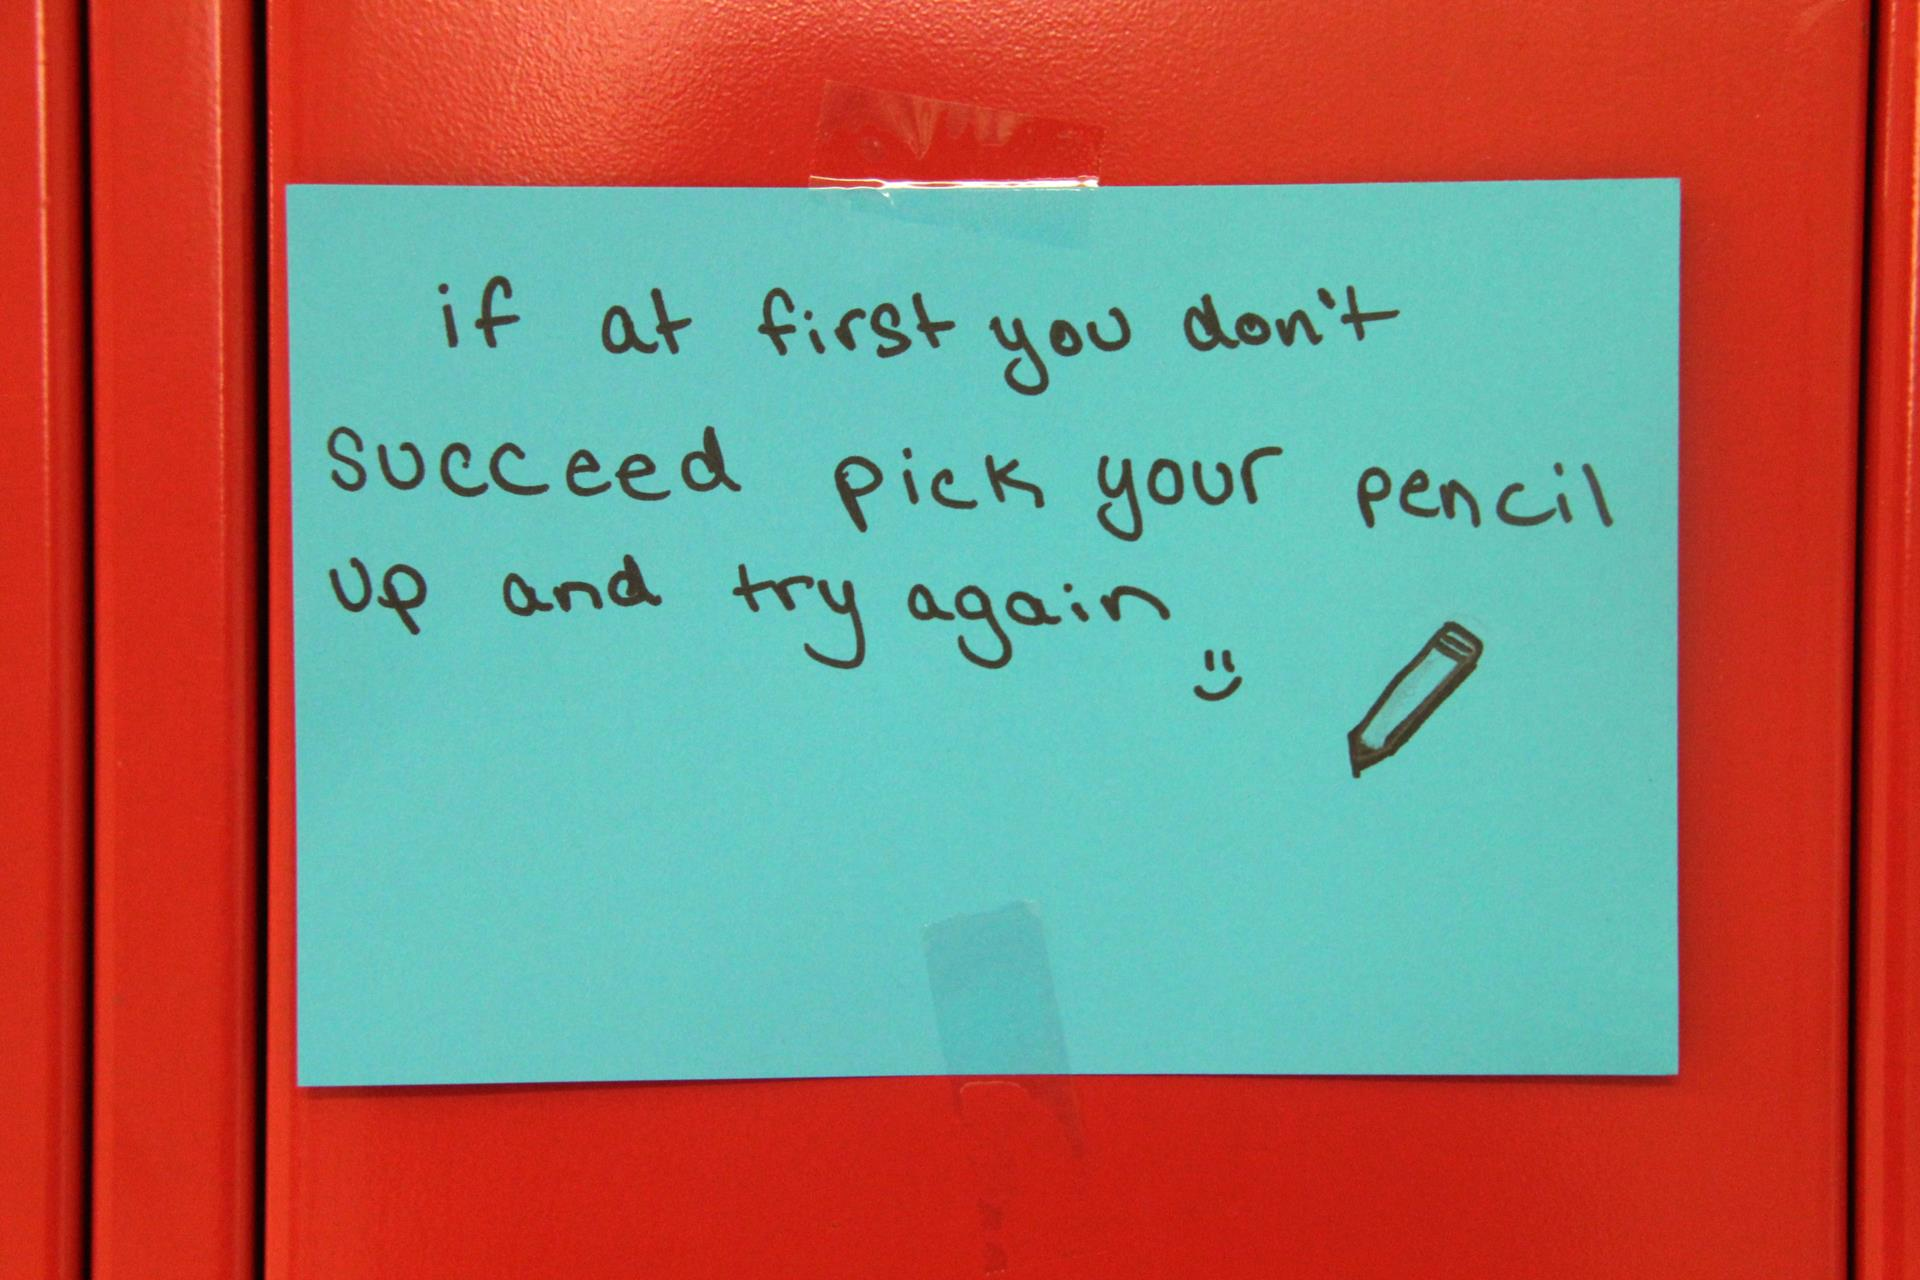 If at first you don't succeed, pick your pencil up and try again.